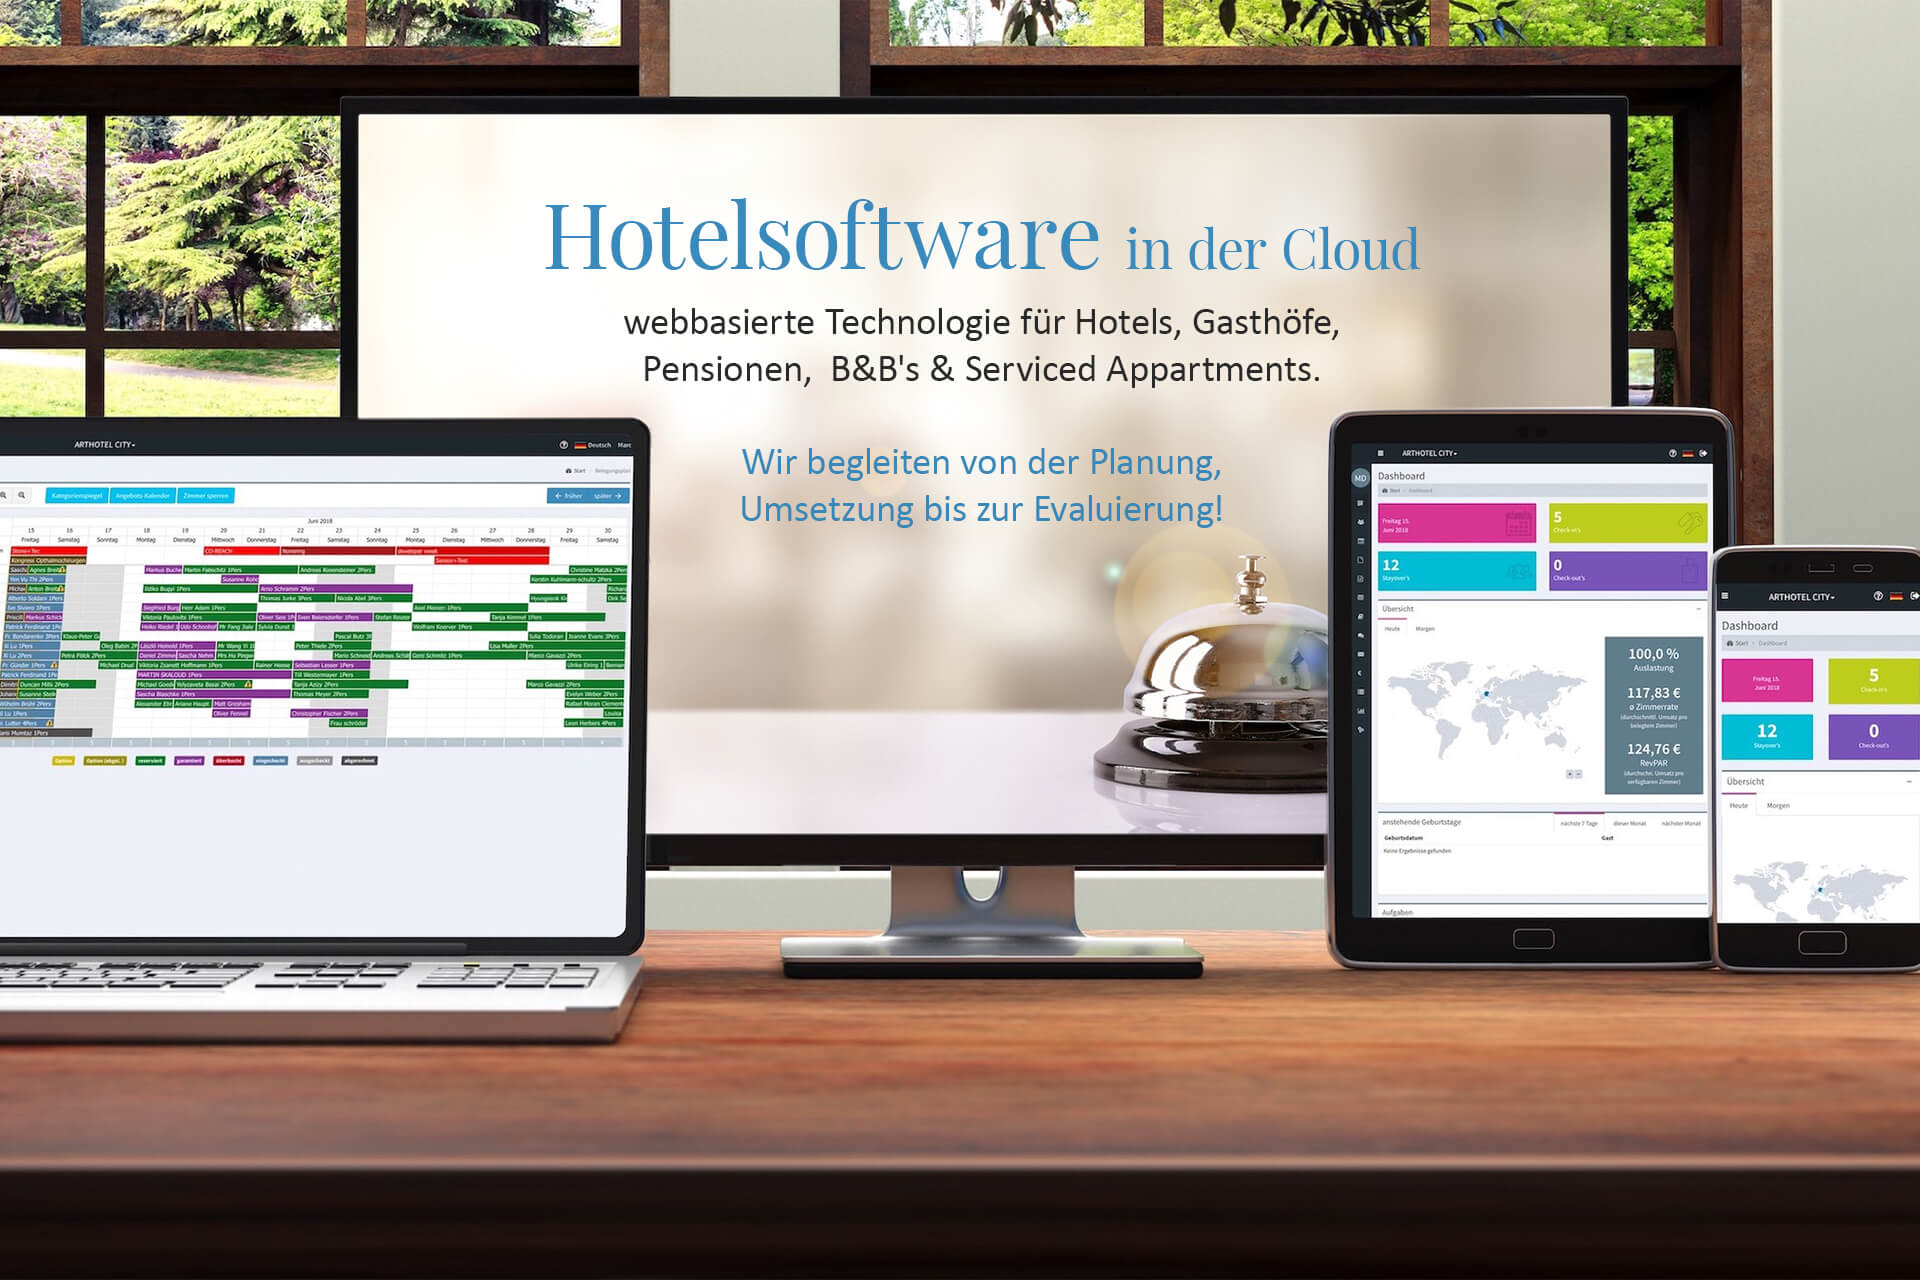 //hotel.planet-holding.com/wp-content/uploads/2019/07/PH-Hotelsoftware-1.jpg